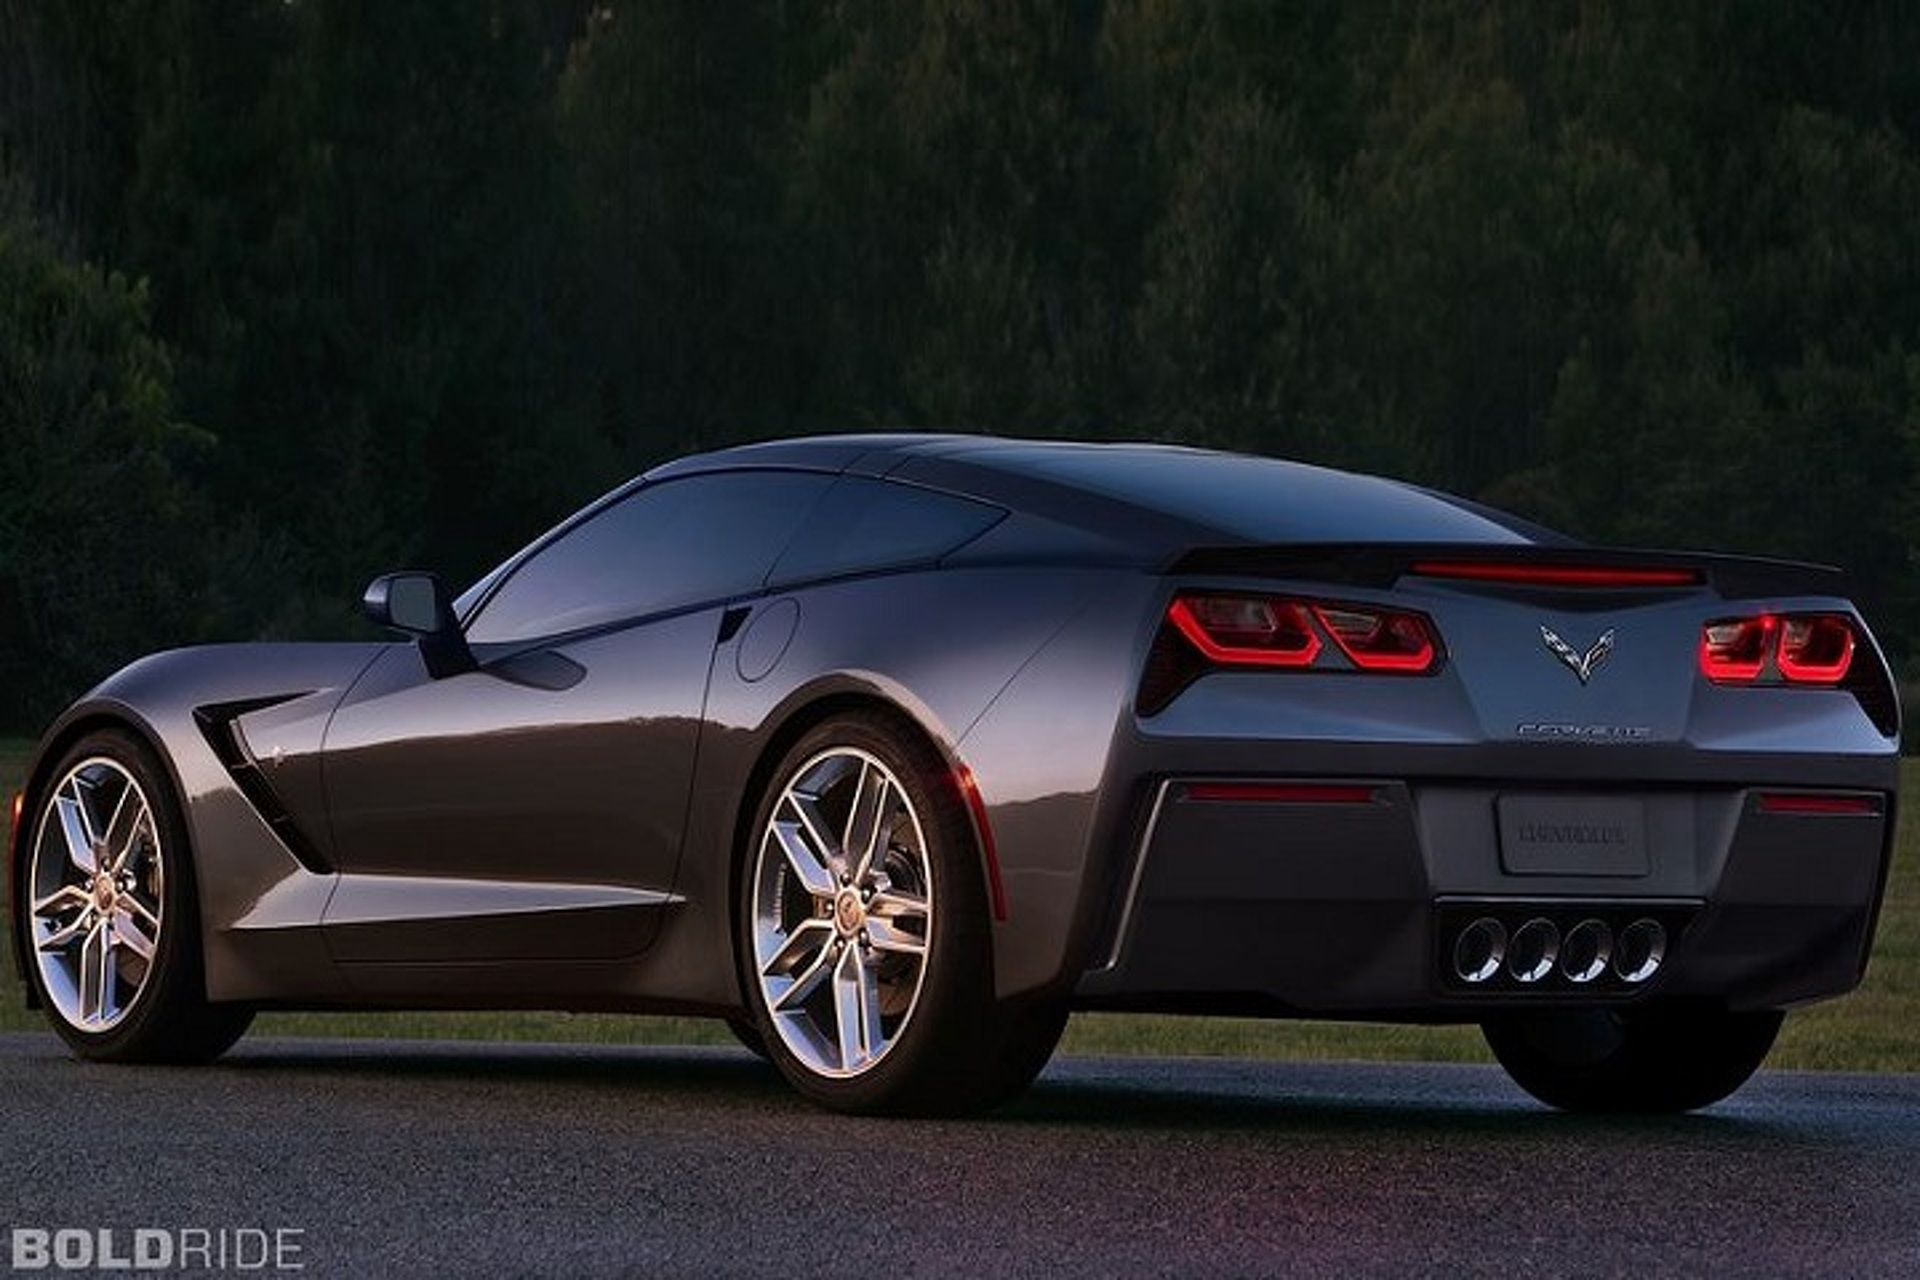 Corvette Stingray Having a Little Engine Trouble